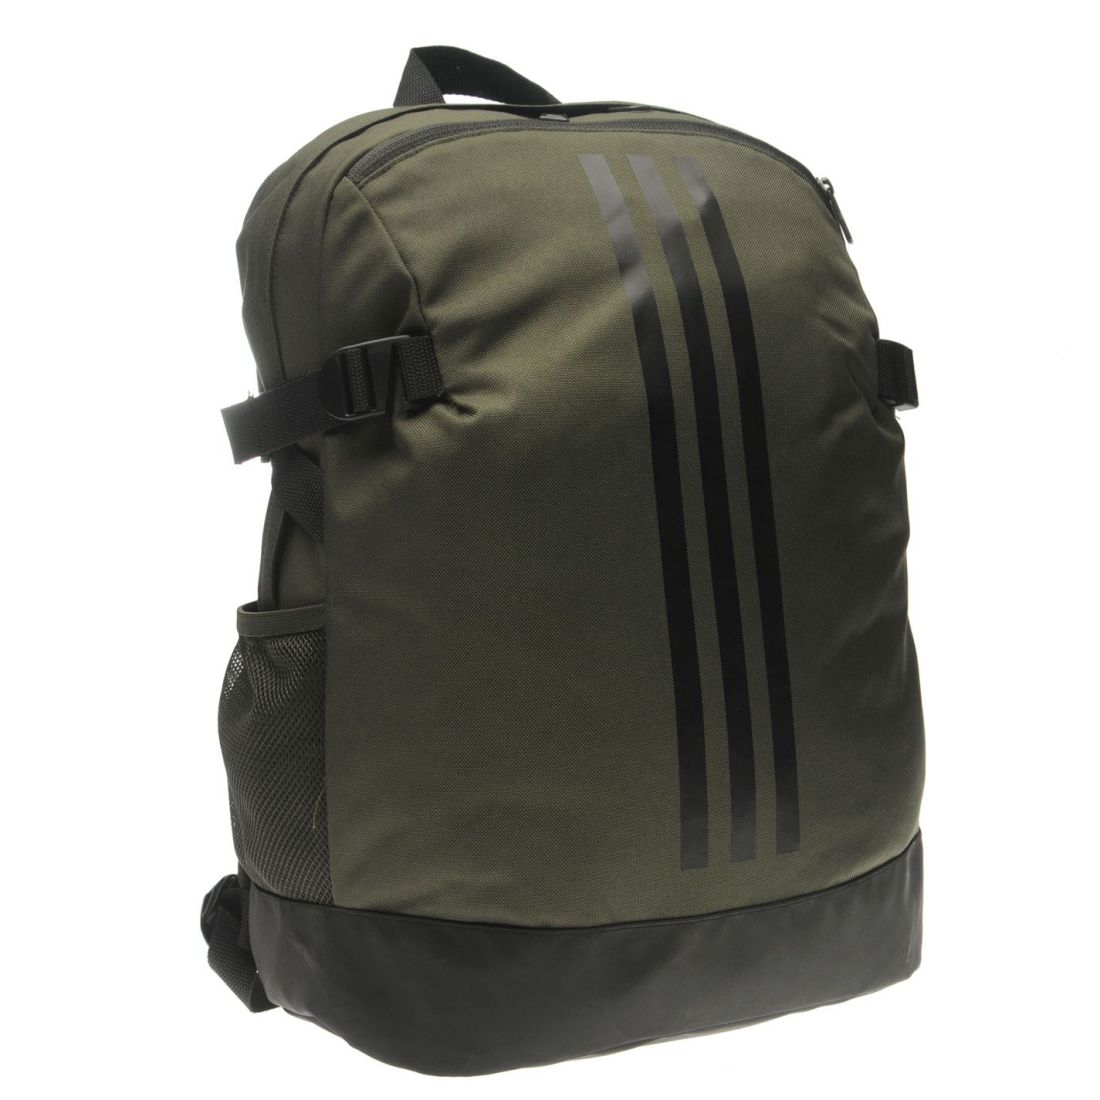 adidas BP Power IV M BR5864 Backpack Black. About this product. Stock  photo  Picture 1 of 6  Picture 2 of 6  Picture 3 of 6 61f2fda2d6c78